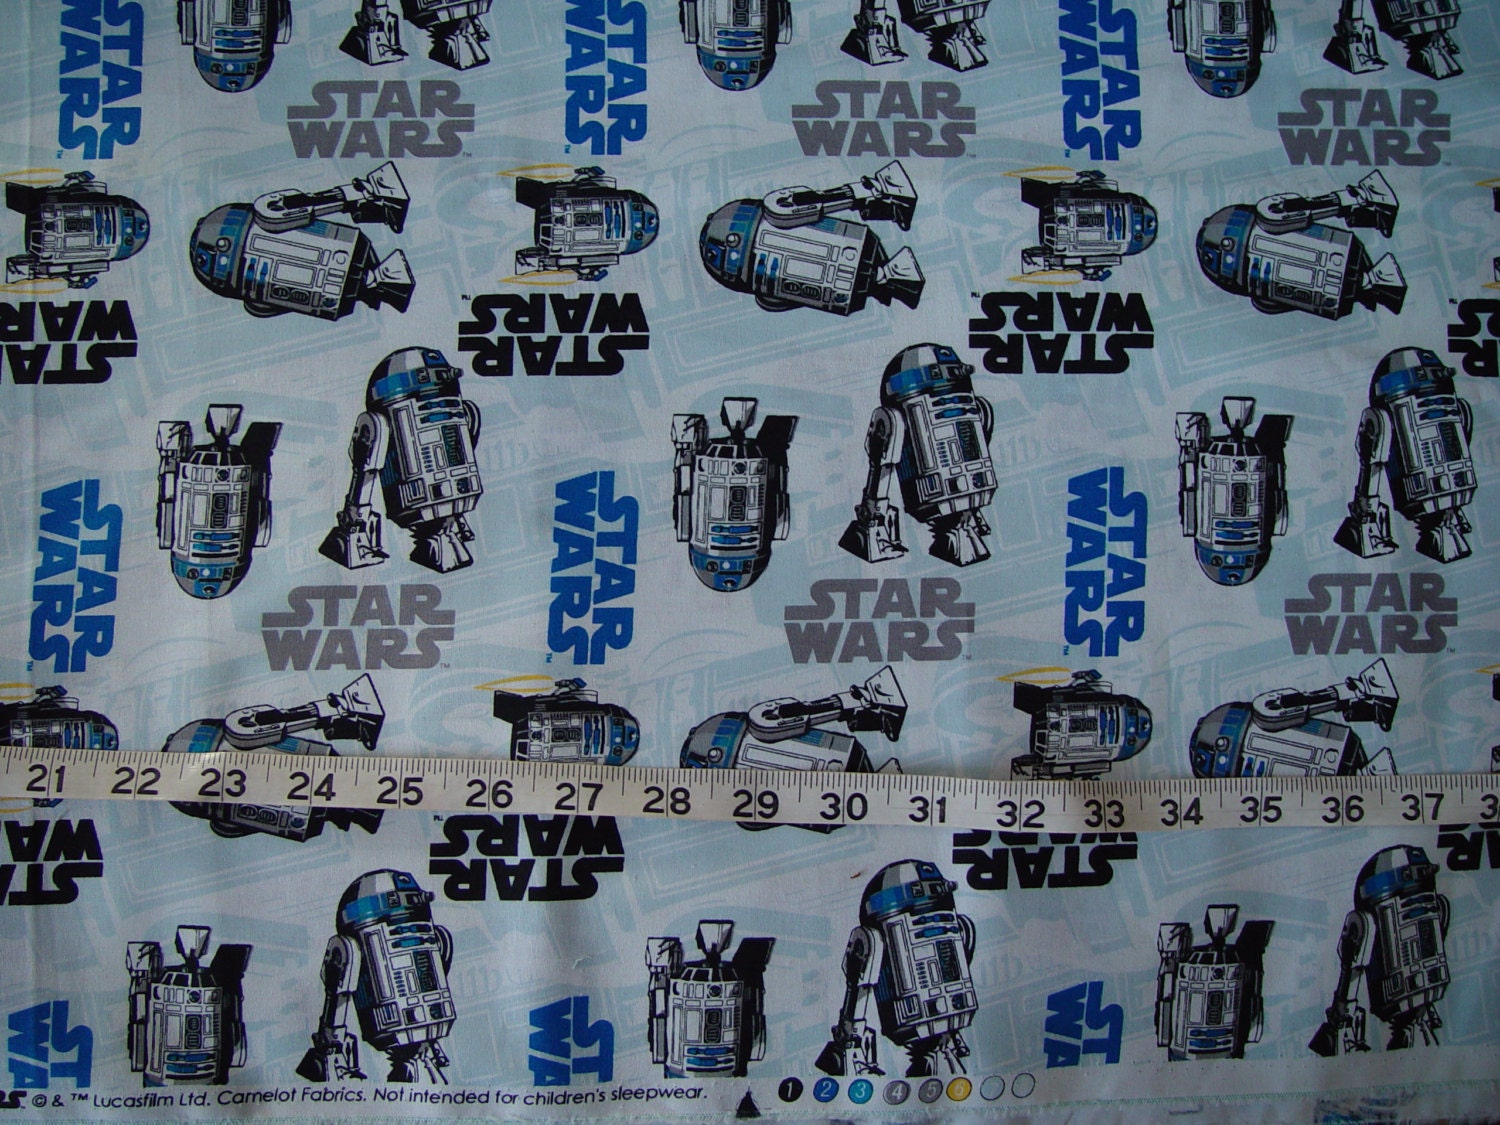 Star wars r2d2 logo fabric almost 2 yards for Star wars fabric